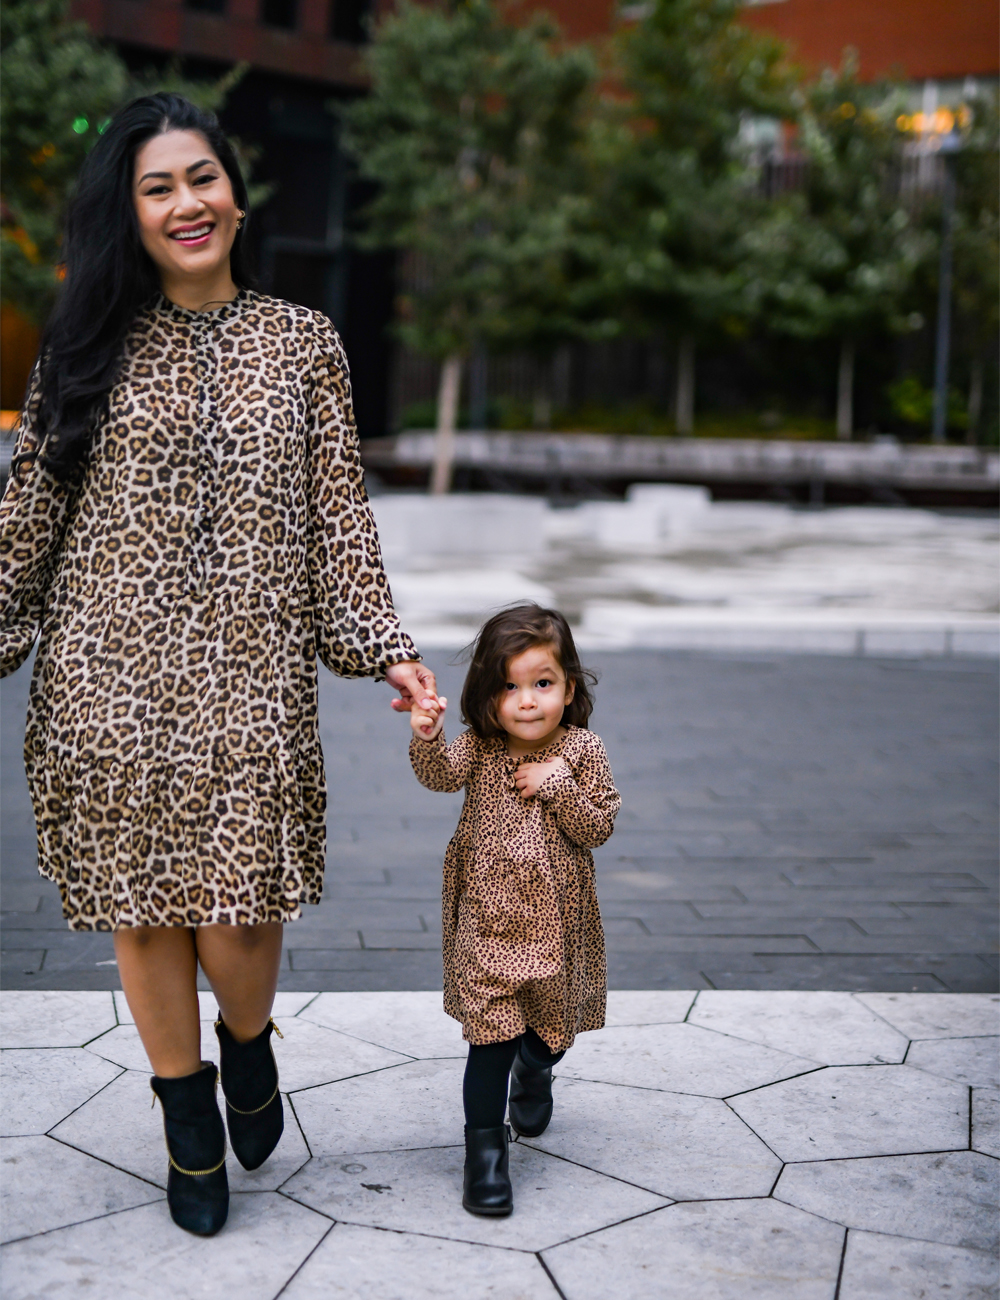 leopard print makes for a great mommy and me matching outfit theme